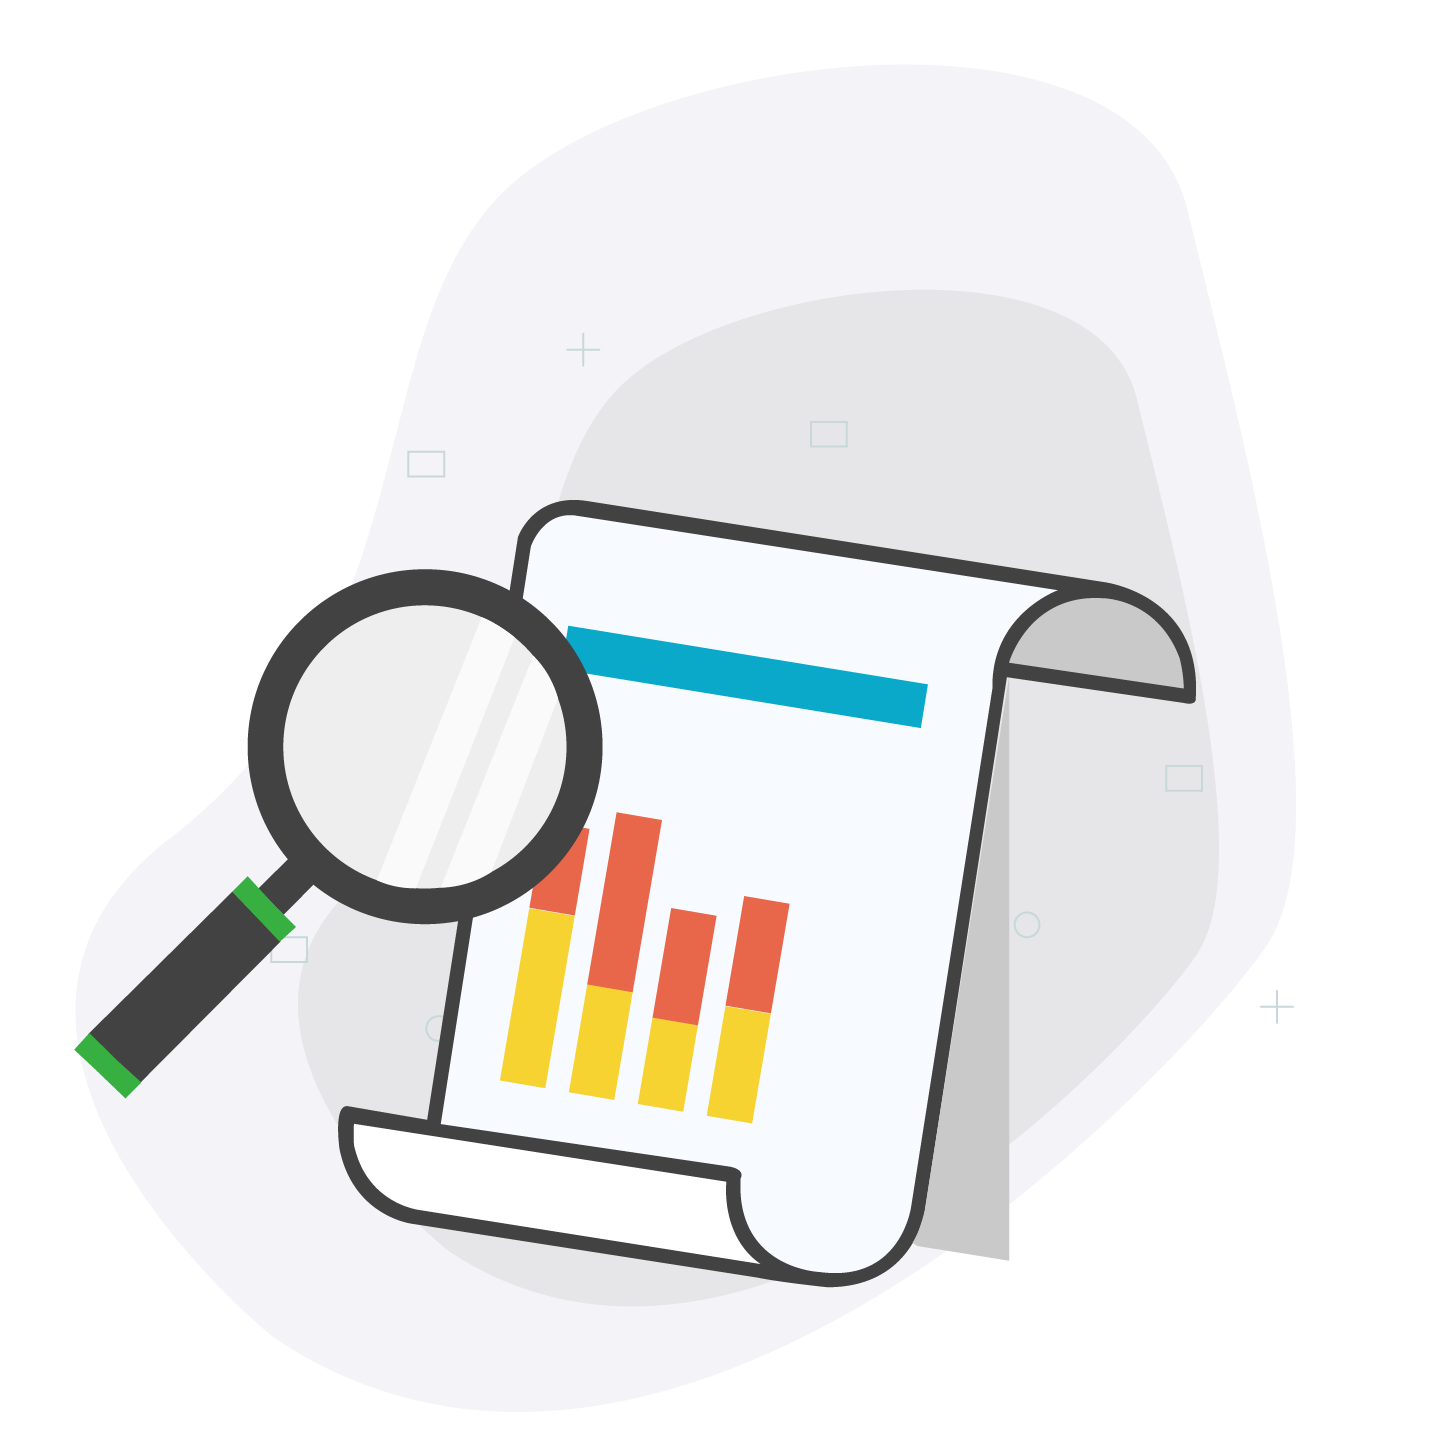 Magnifying glass over an SEO report illustration